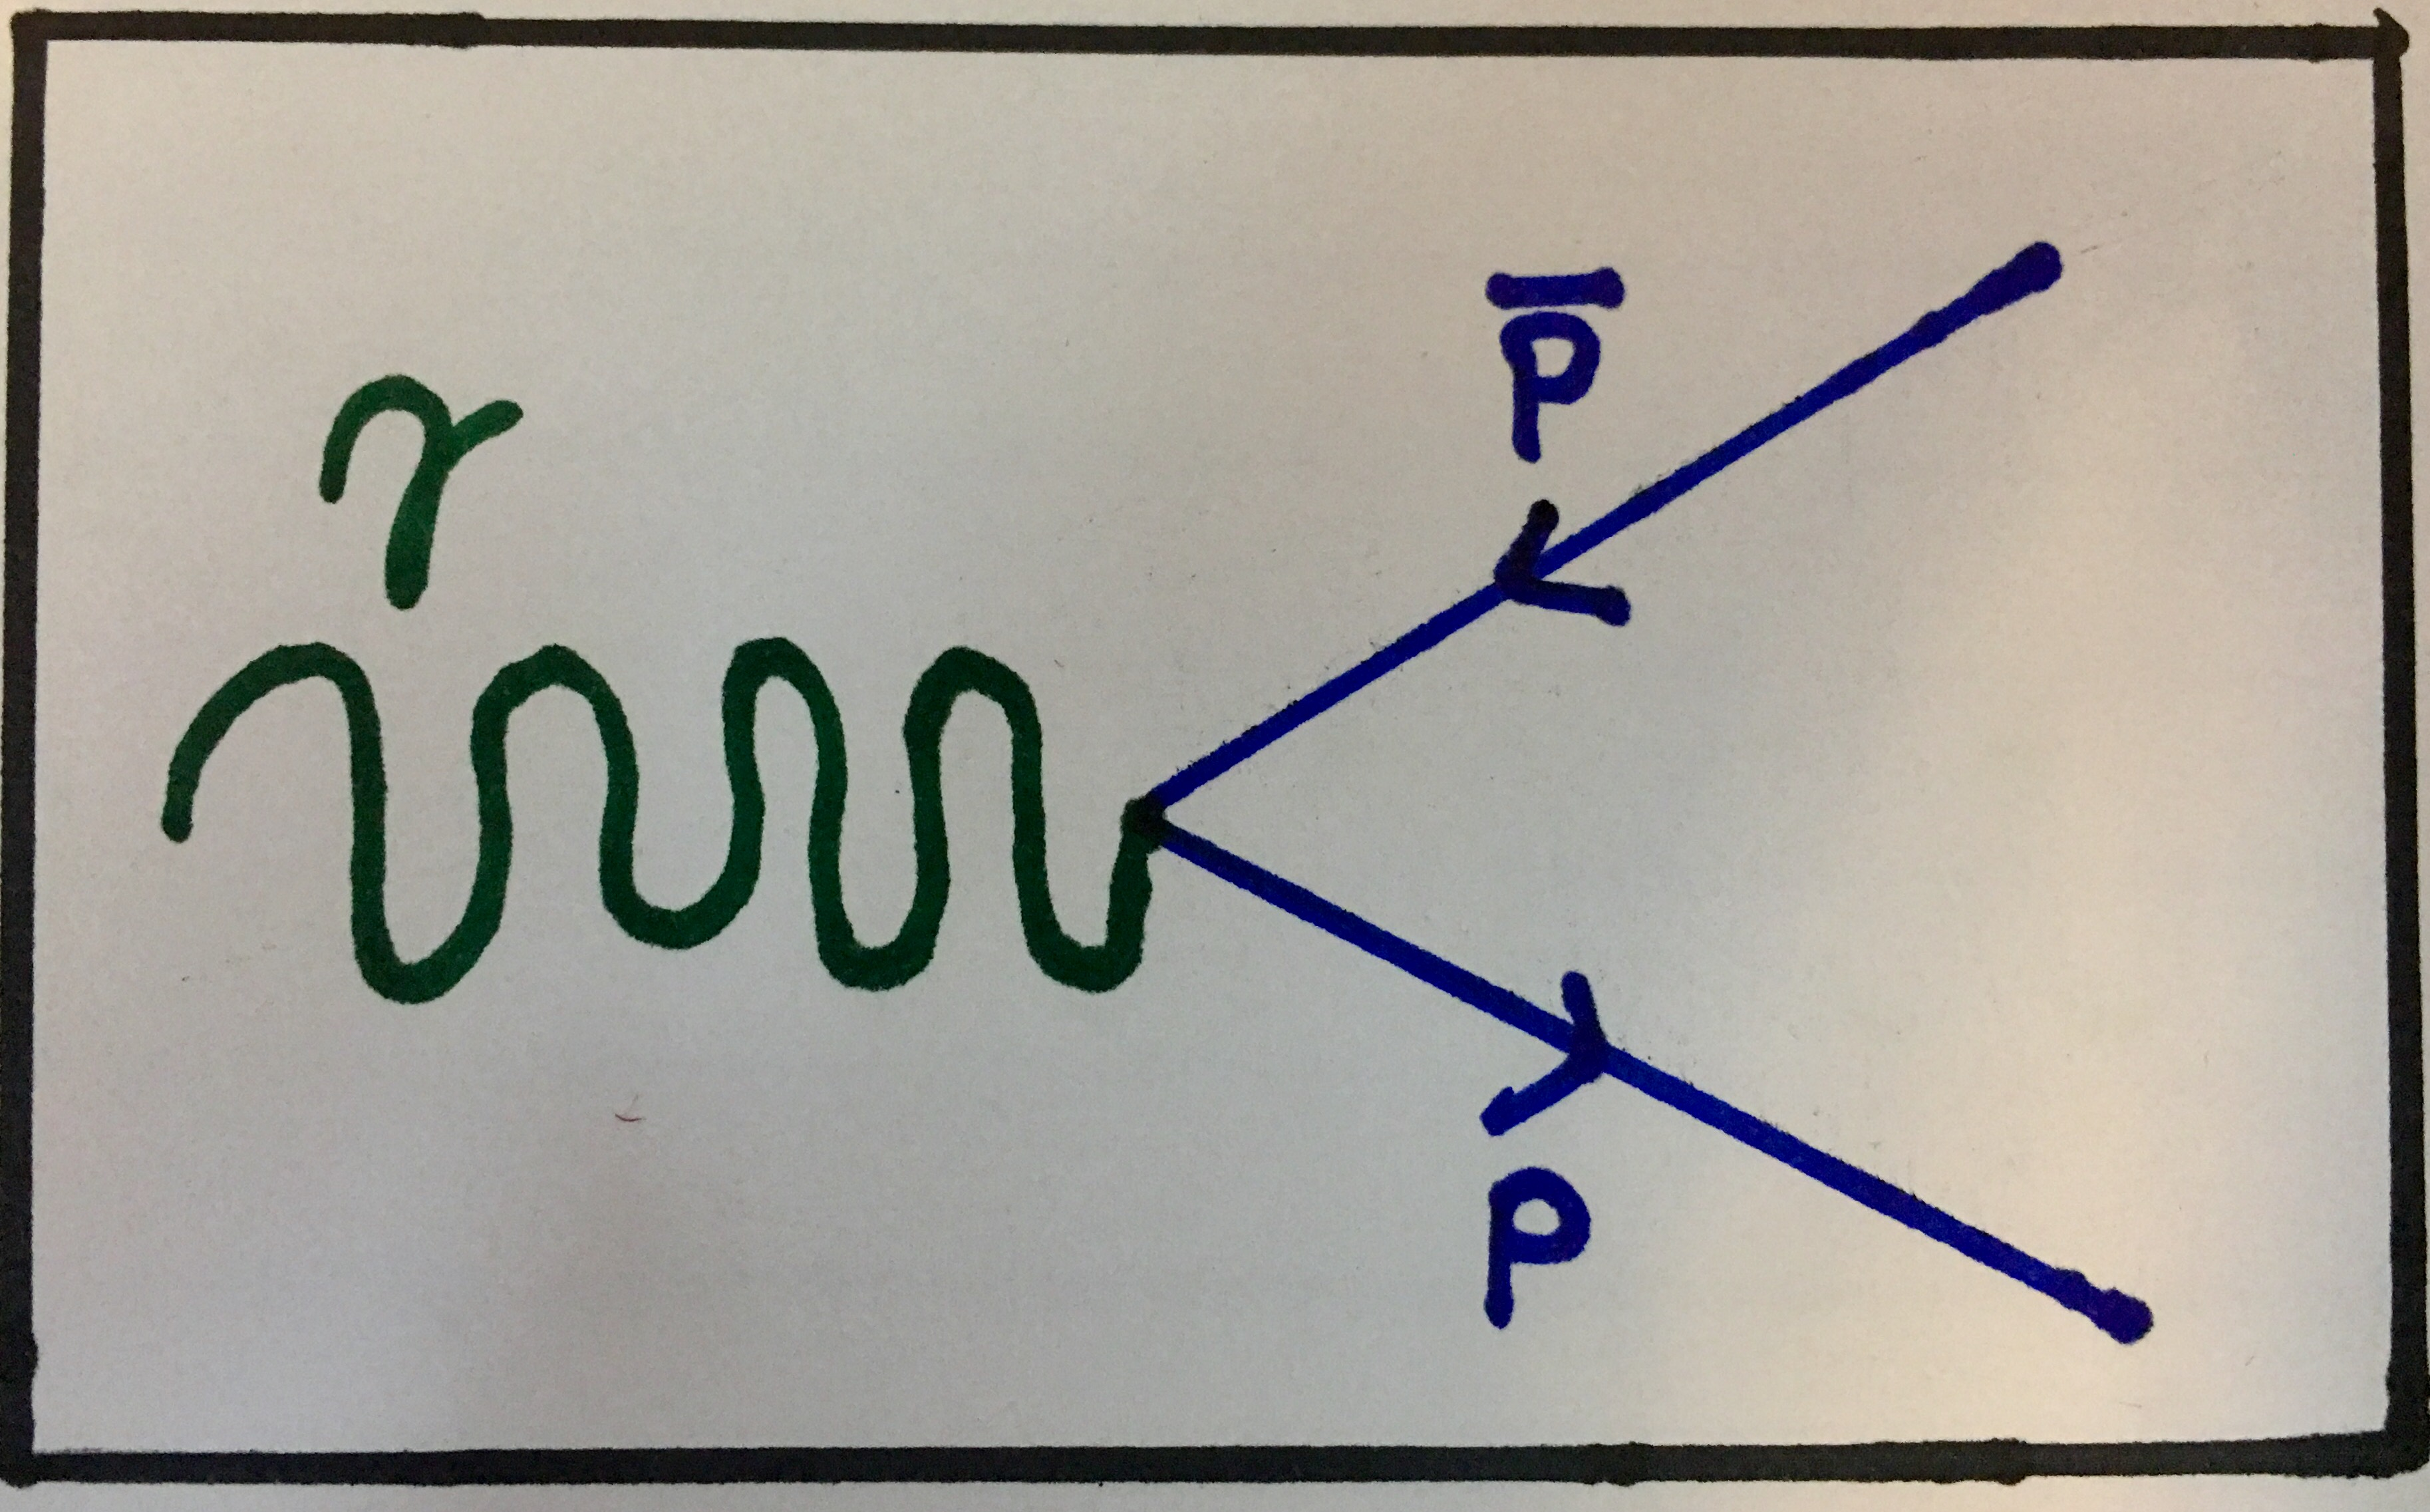 Particle physics part 3 interacting particles feynman diagram showing general pair production again the particles produced need to have electric charge as this is an electromagnetic interaction pooptronica